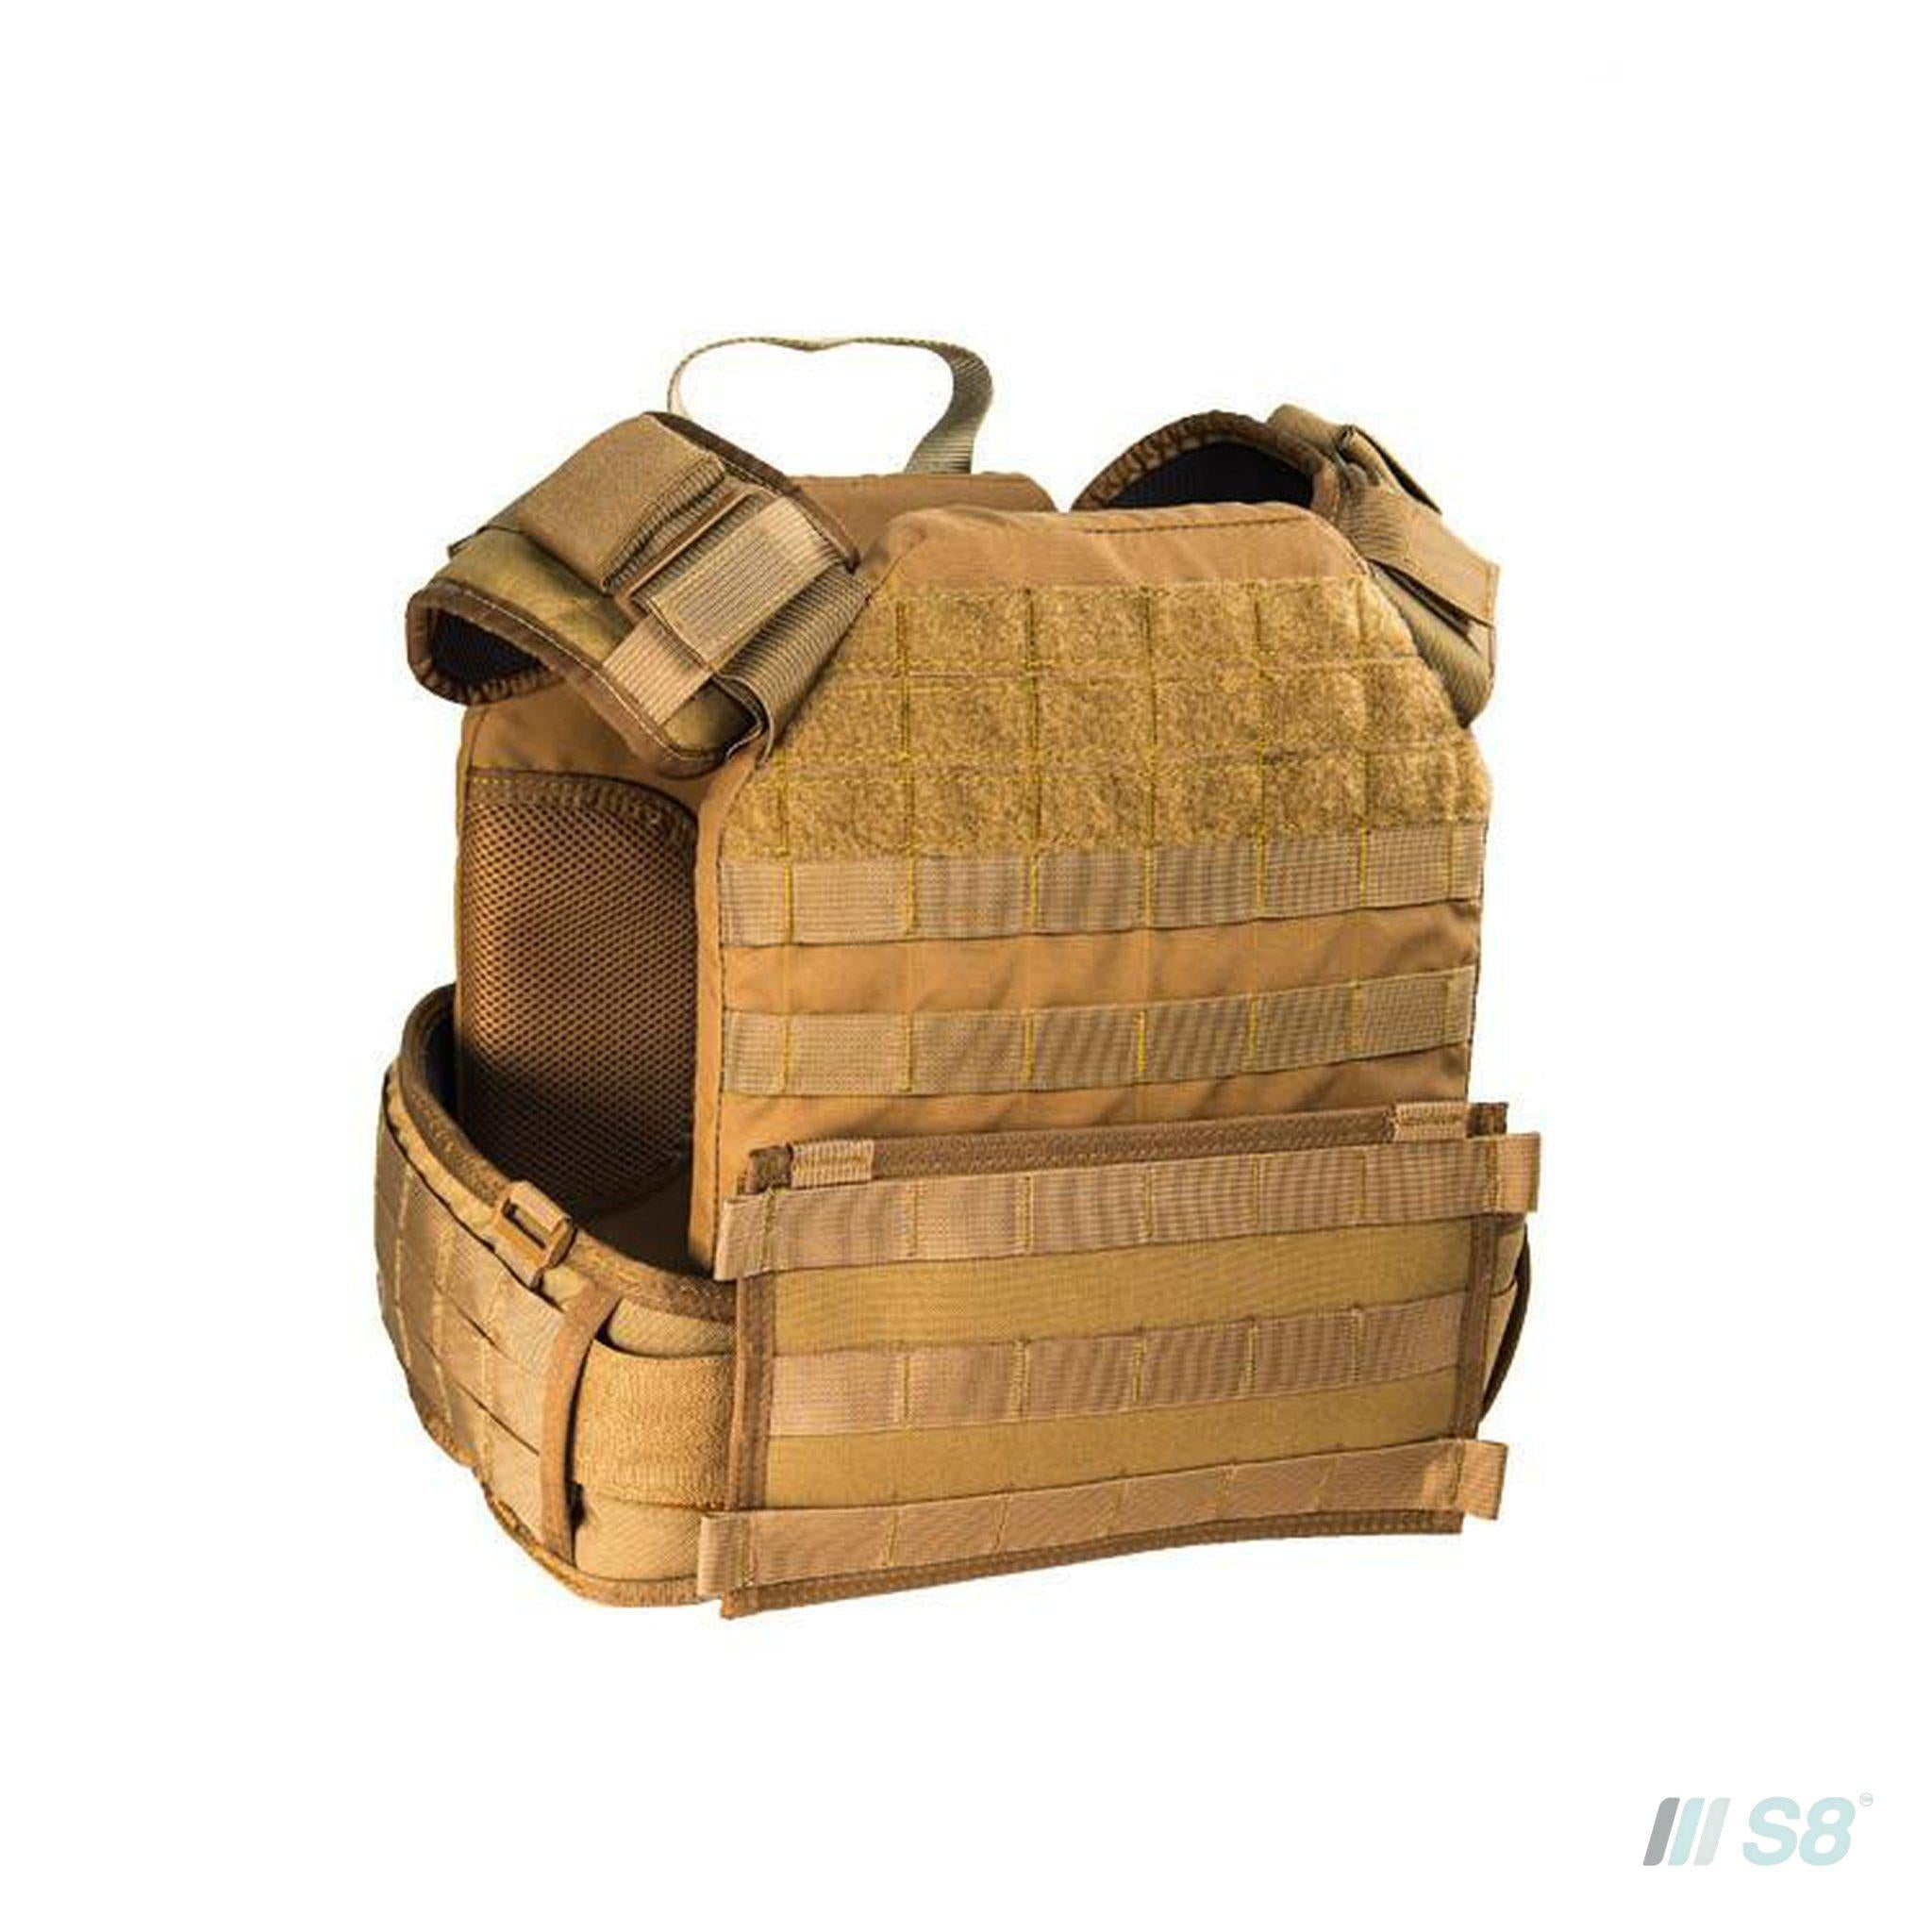 HSGI - Modular Plate Carrier - Bravo-HSGI-S8 Products Group